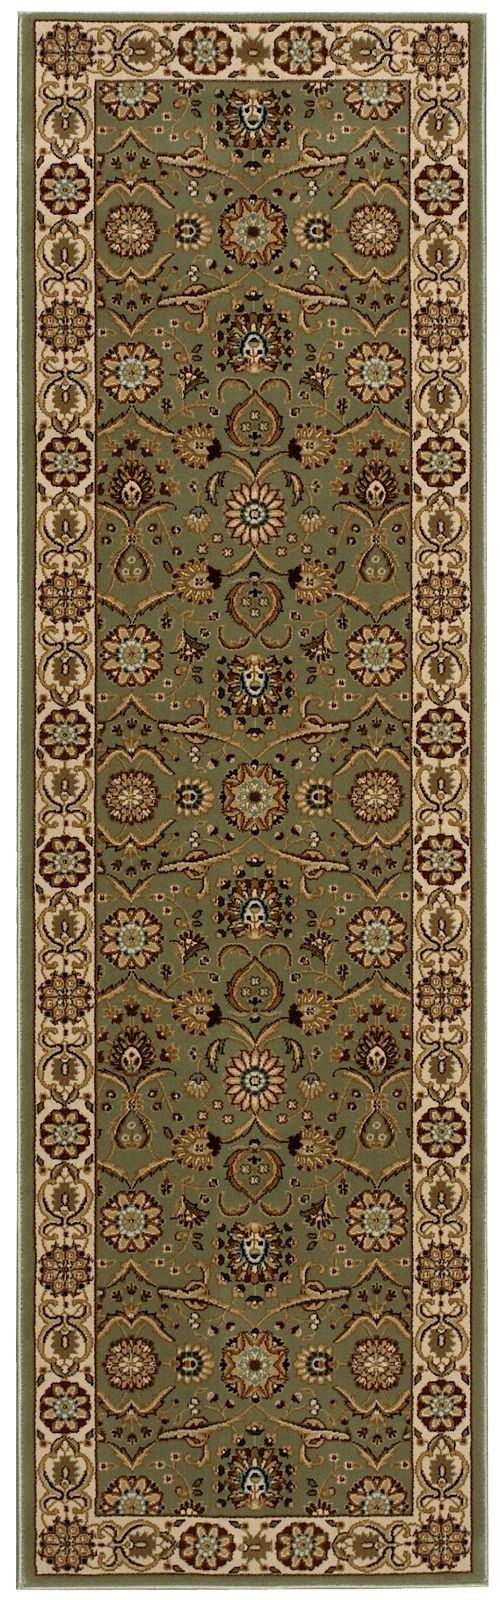 nourison persian crown traditional area rug collection